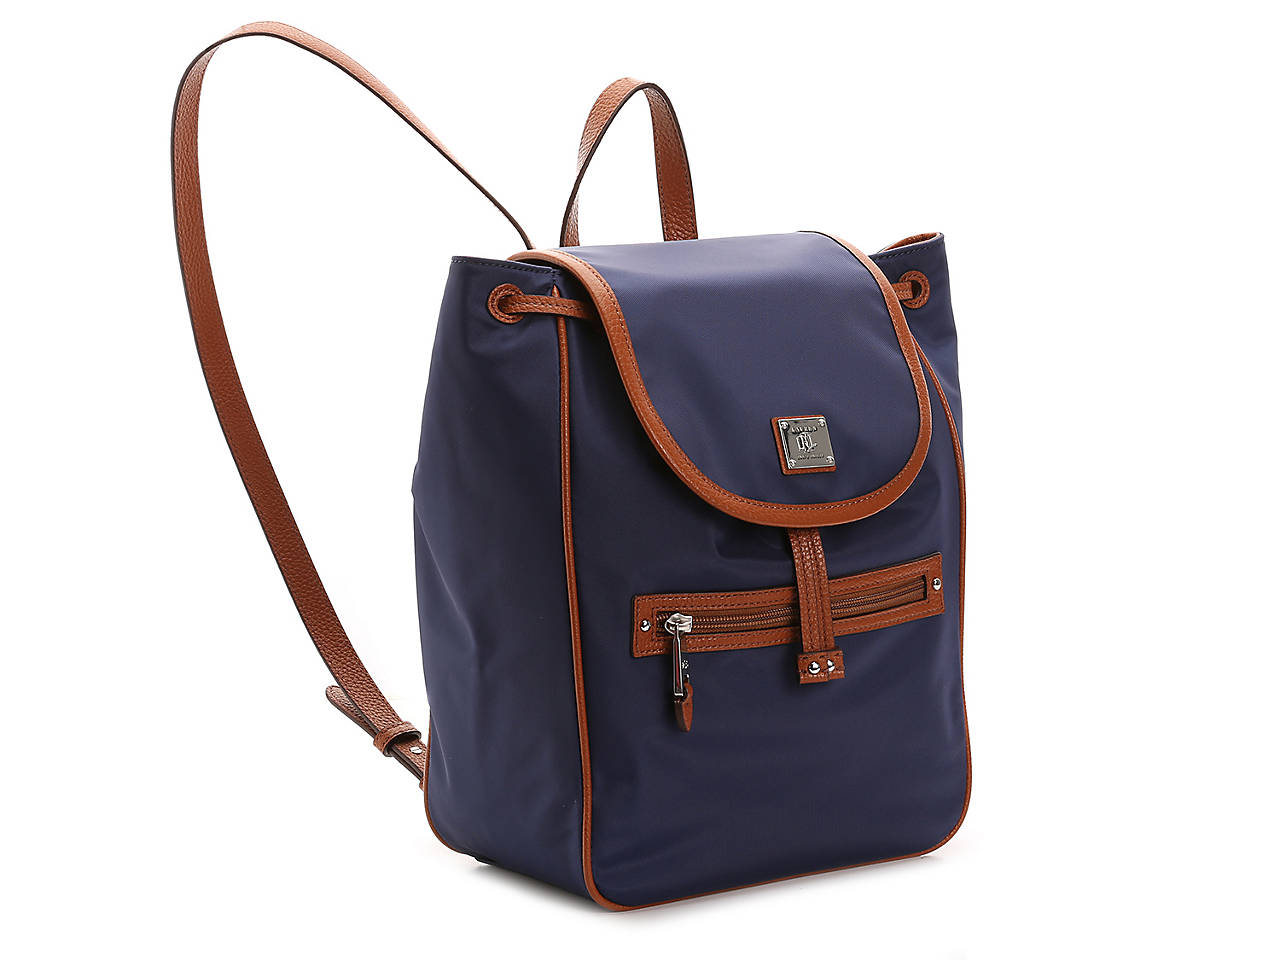 dc4468dafba2 Polo Ralph Lauren Nylon Backpack | The Shred Centre